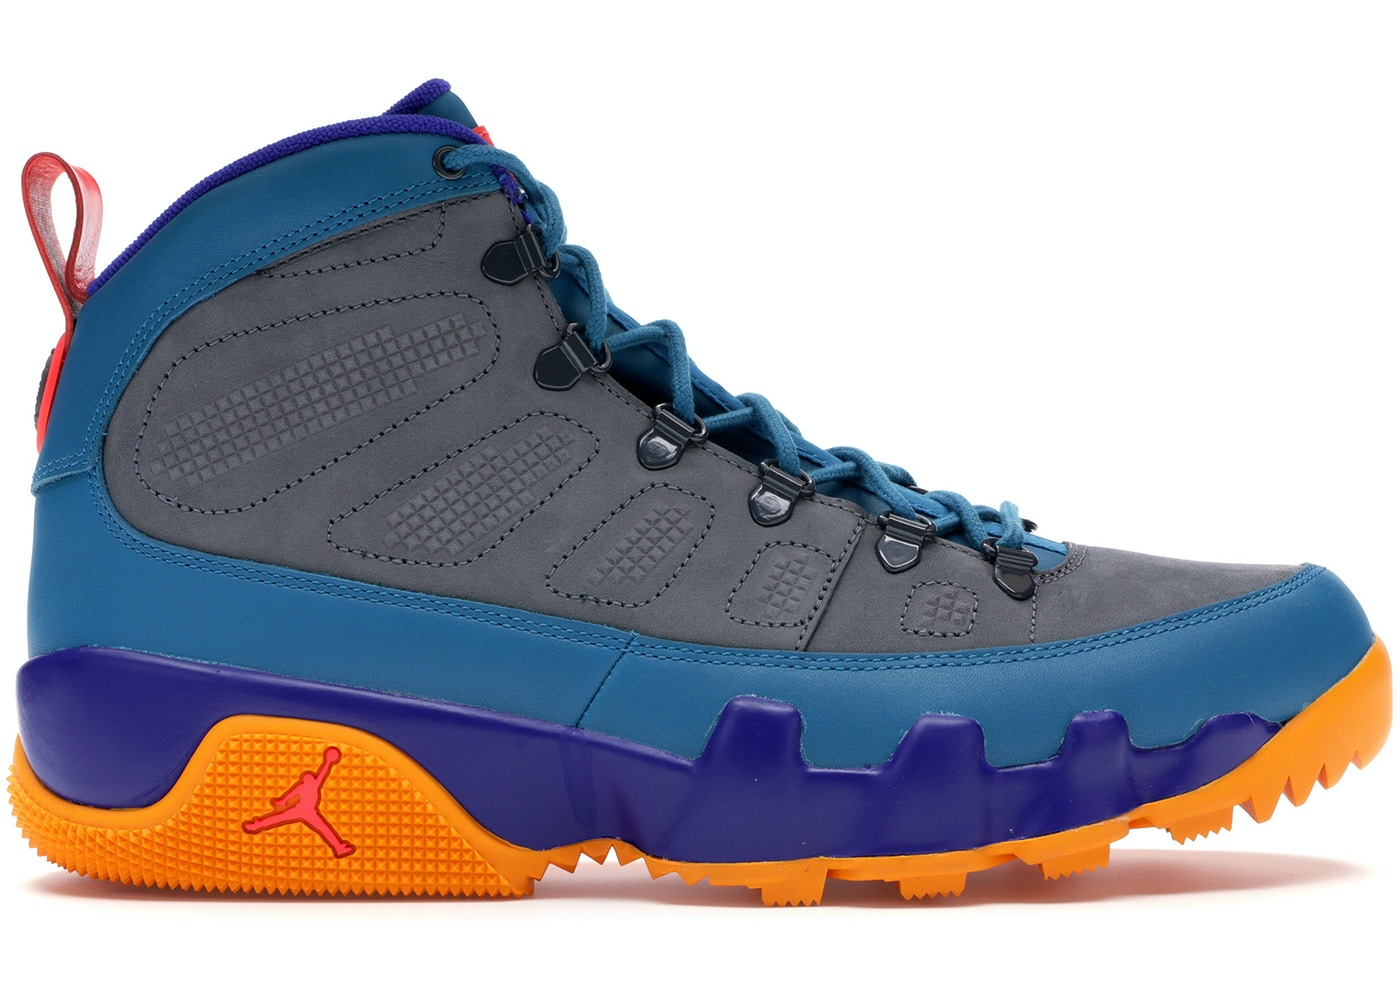 cheap for discount e0240 7d0a7 Buy Air Jordan 9 Shoes   Deadstock Sneakers